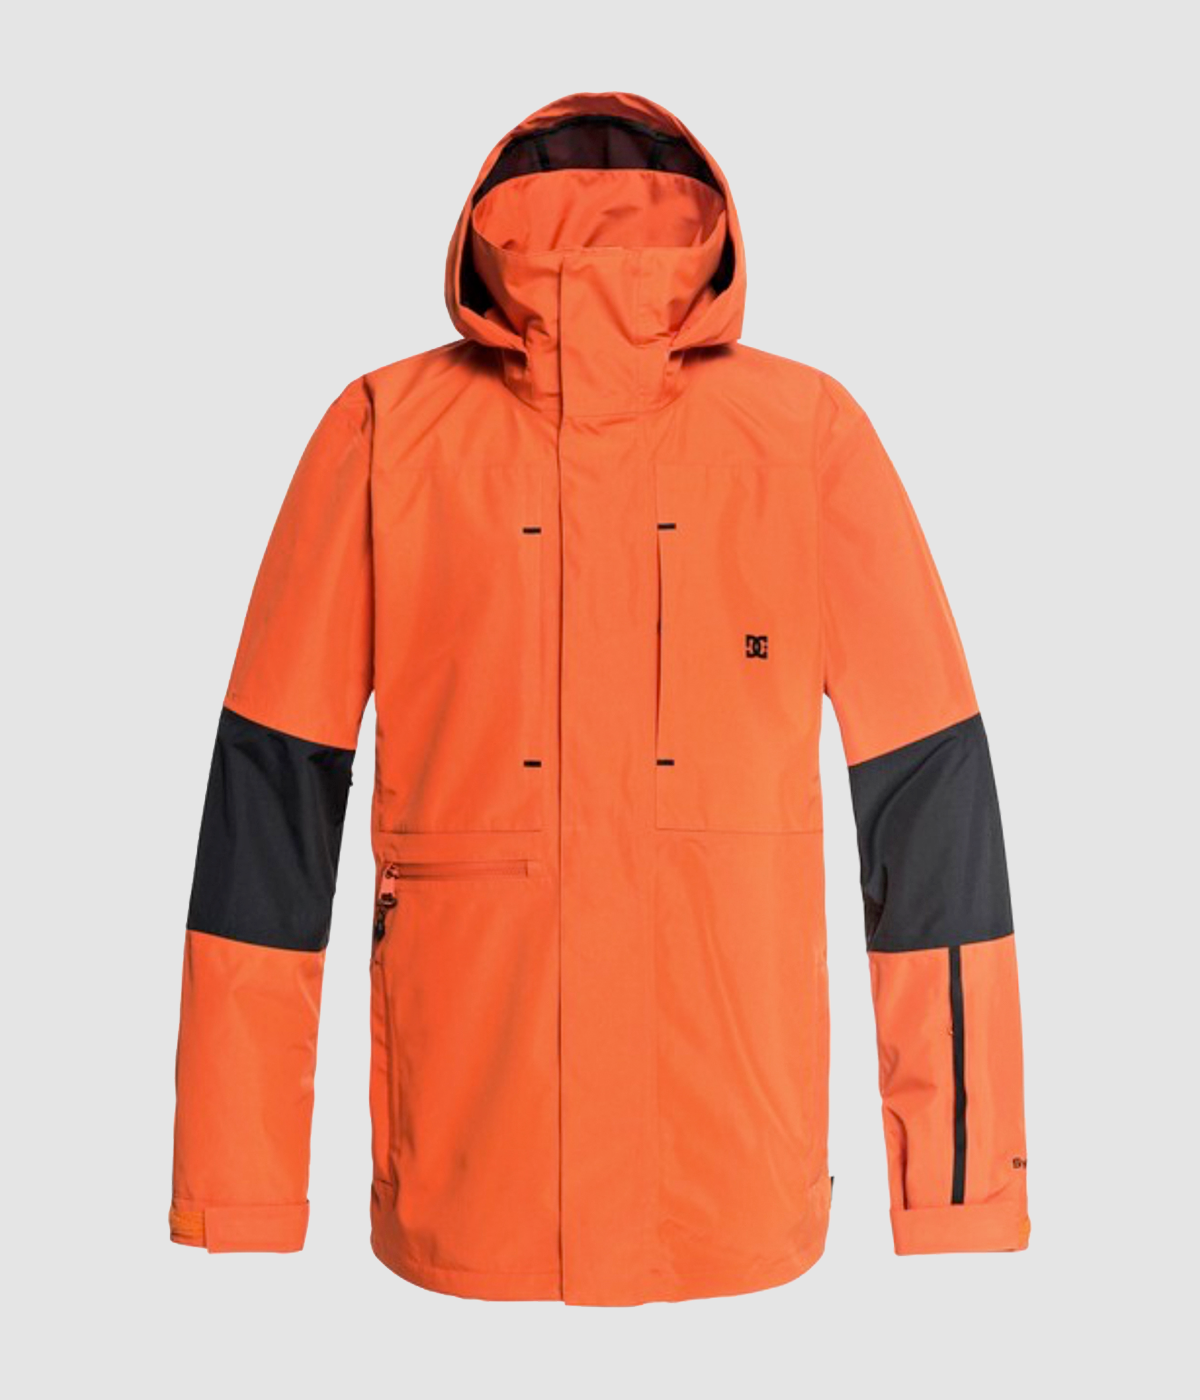 DC Command - Packable Shell Snow Jacket for Men: surfers' gift guide 2018